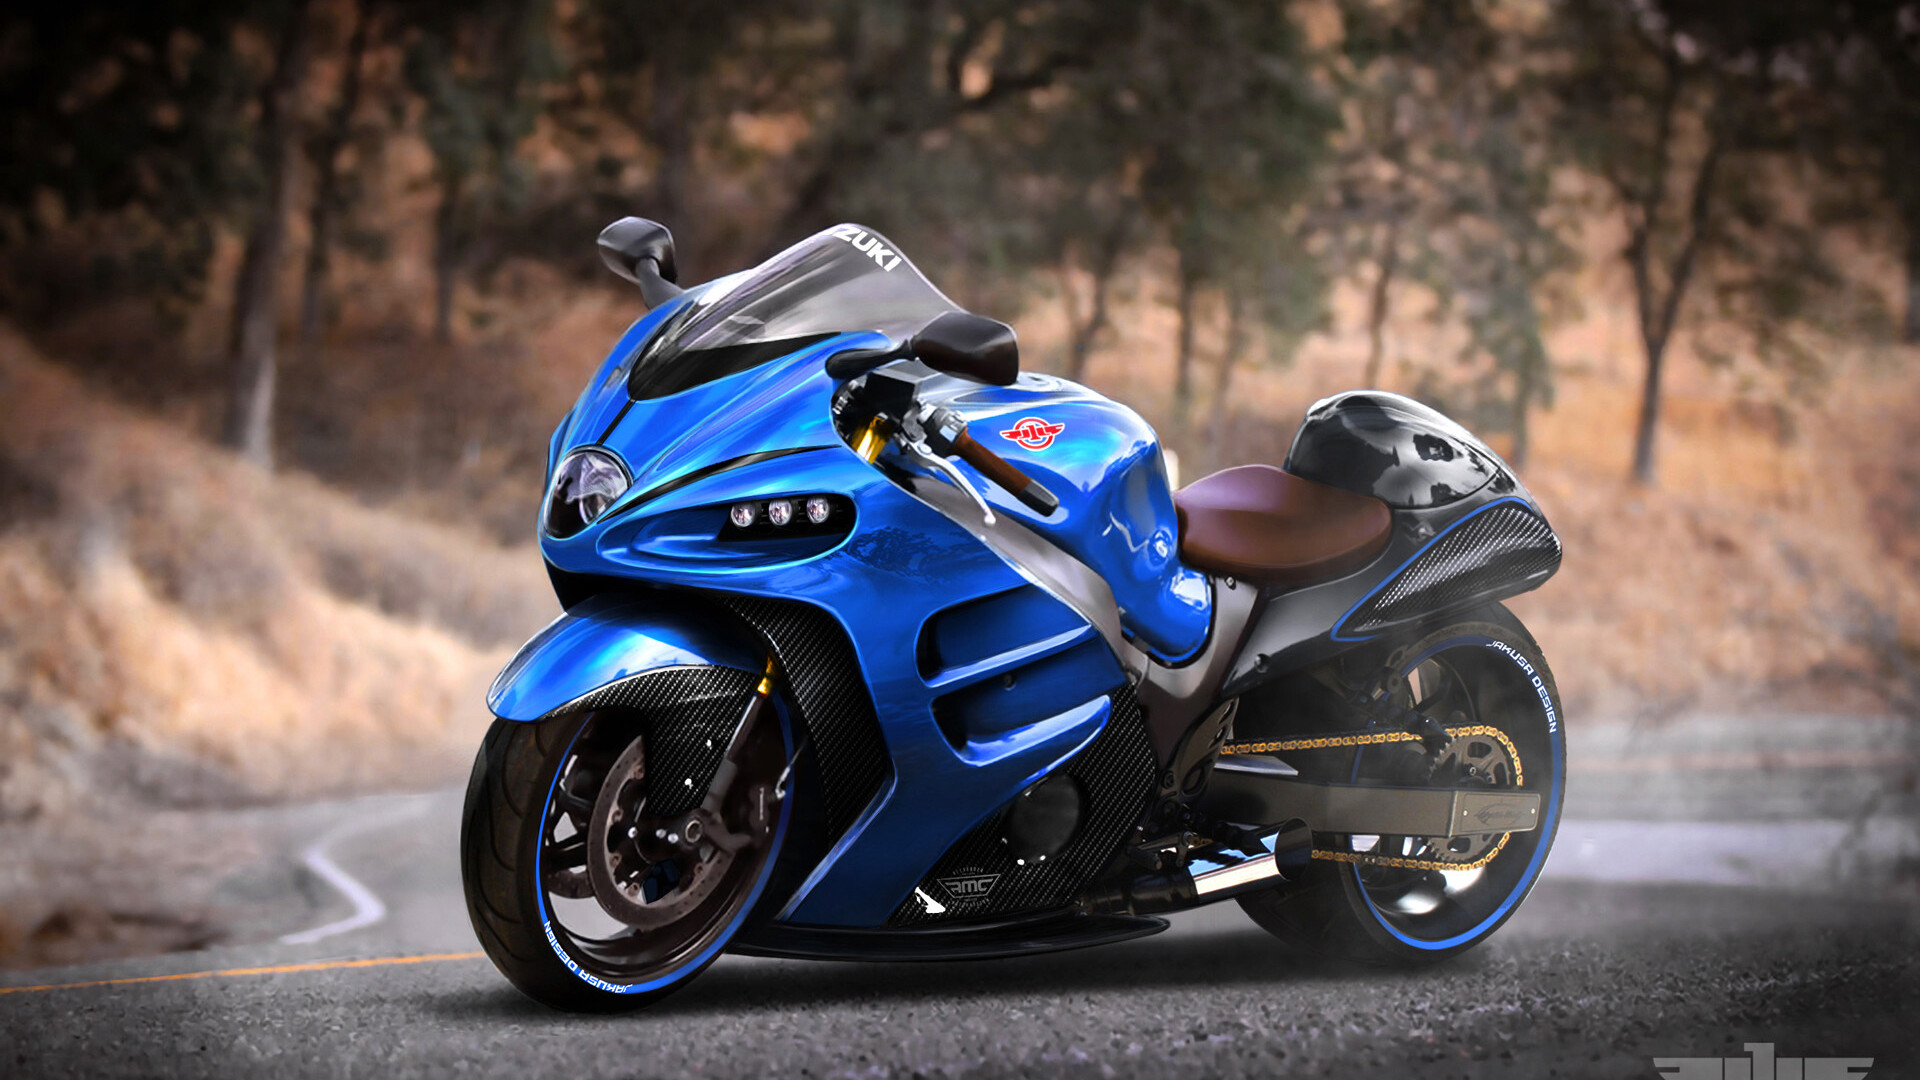 1920x1080 Hayabusa Art Laptop Full Hd 1080p Hd 4k Wallpapers Images Backgrounds Photos And Pictures